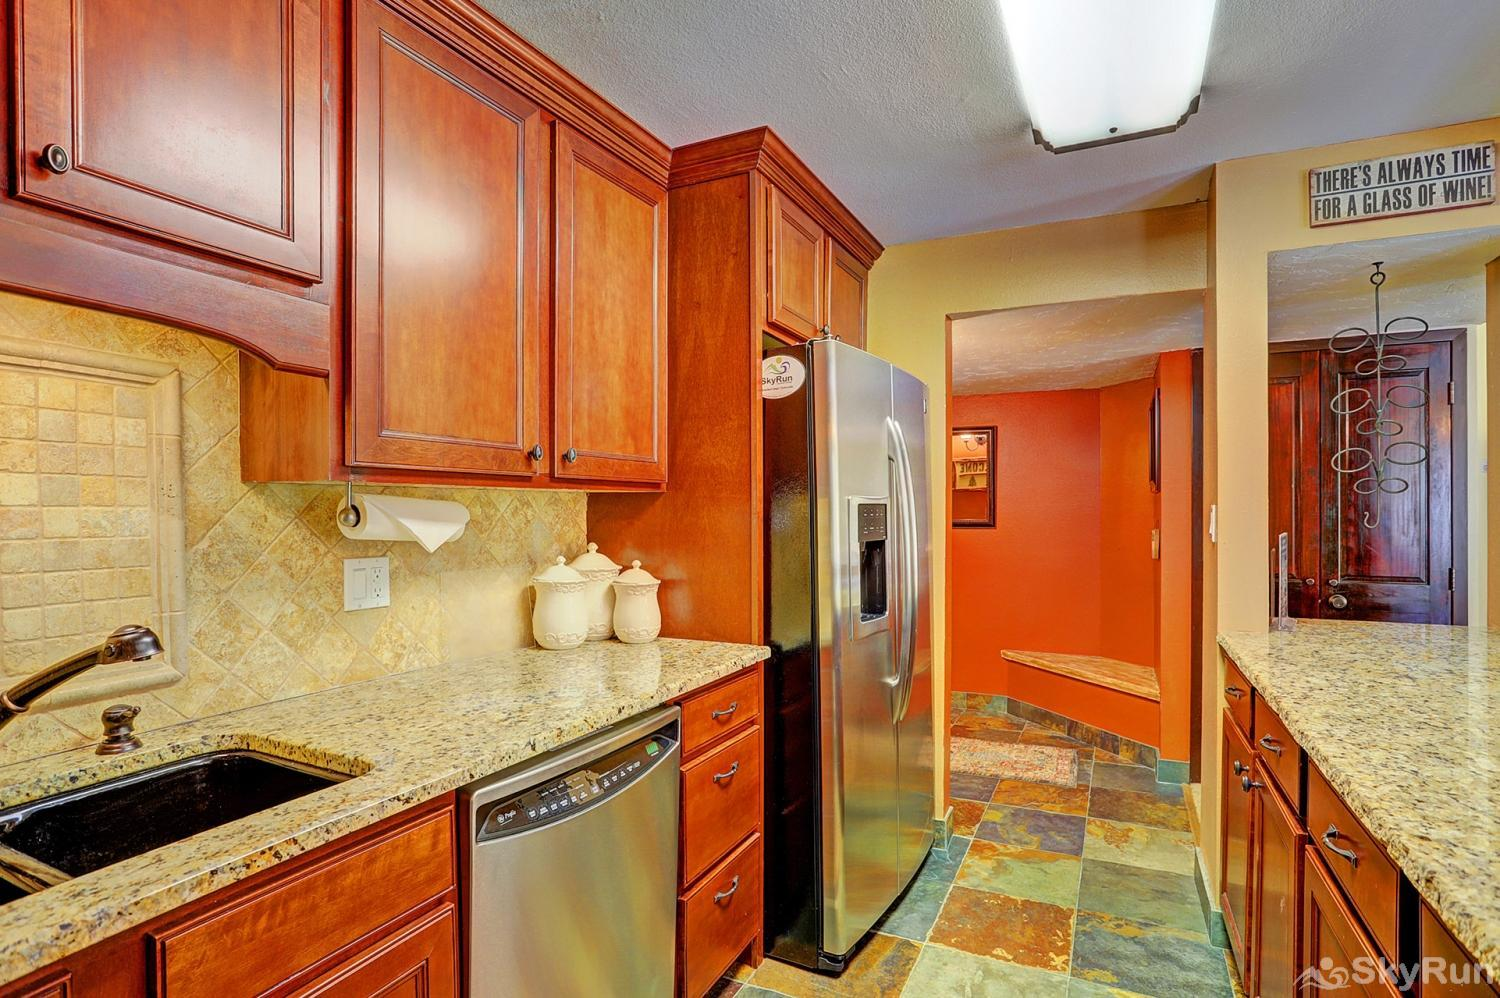 Powderhorn C202 Alternate view of kitchen with full size fridge and dishwasher